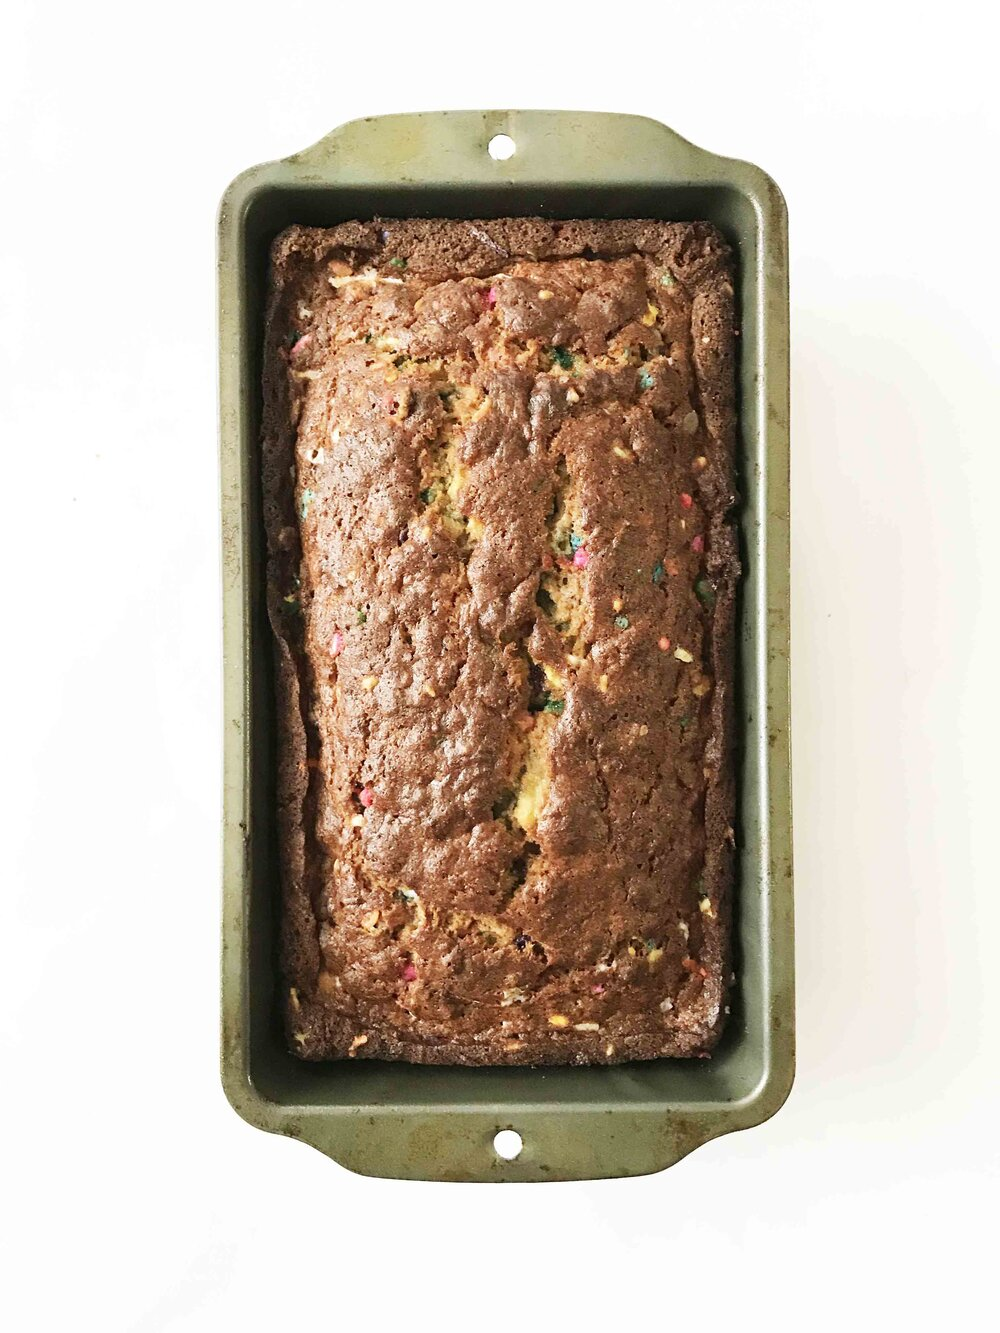 unicorn-banana-bread8.jpg